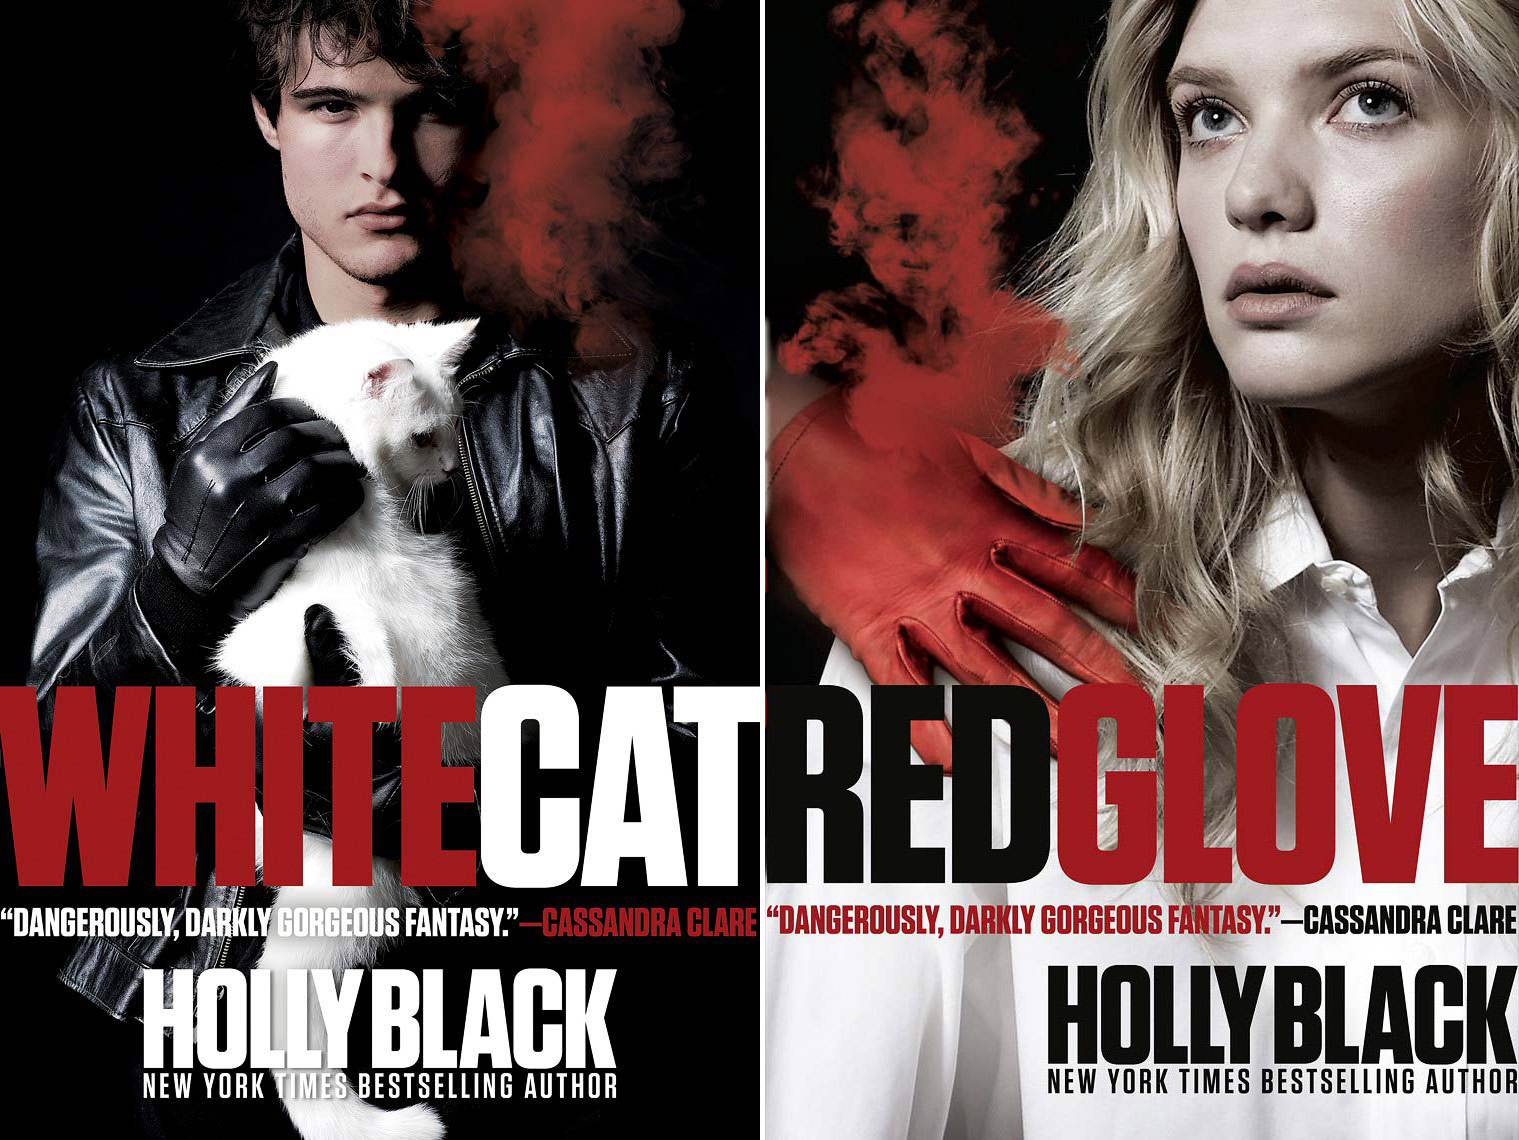 White Cat - Red Glove - Holly Black | Michael Frost Photography